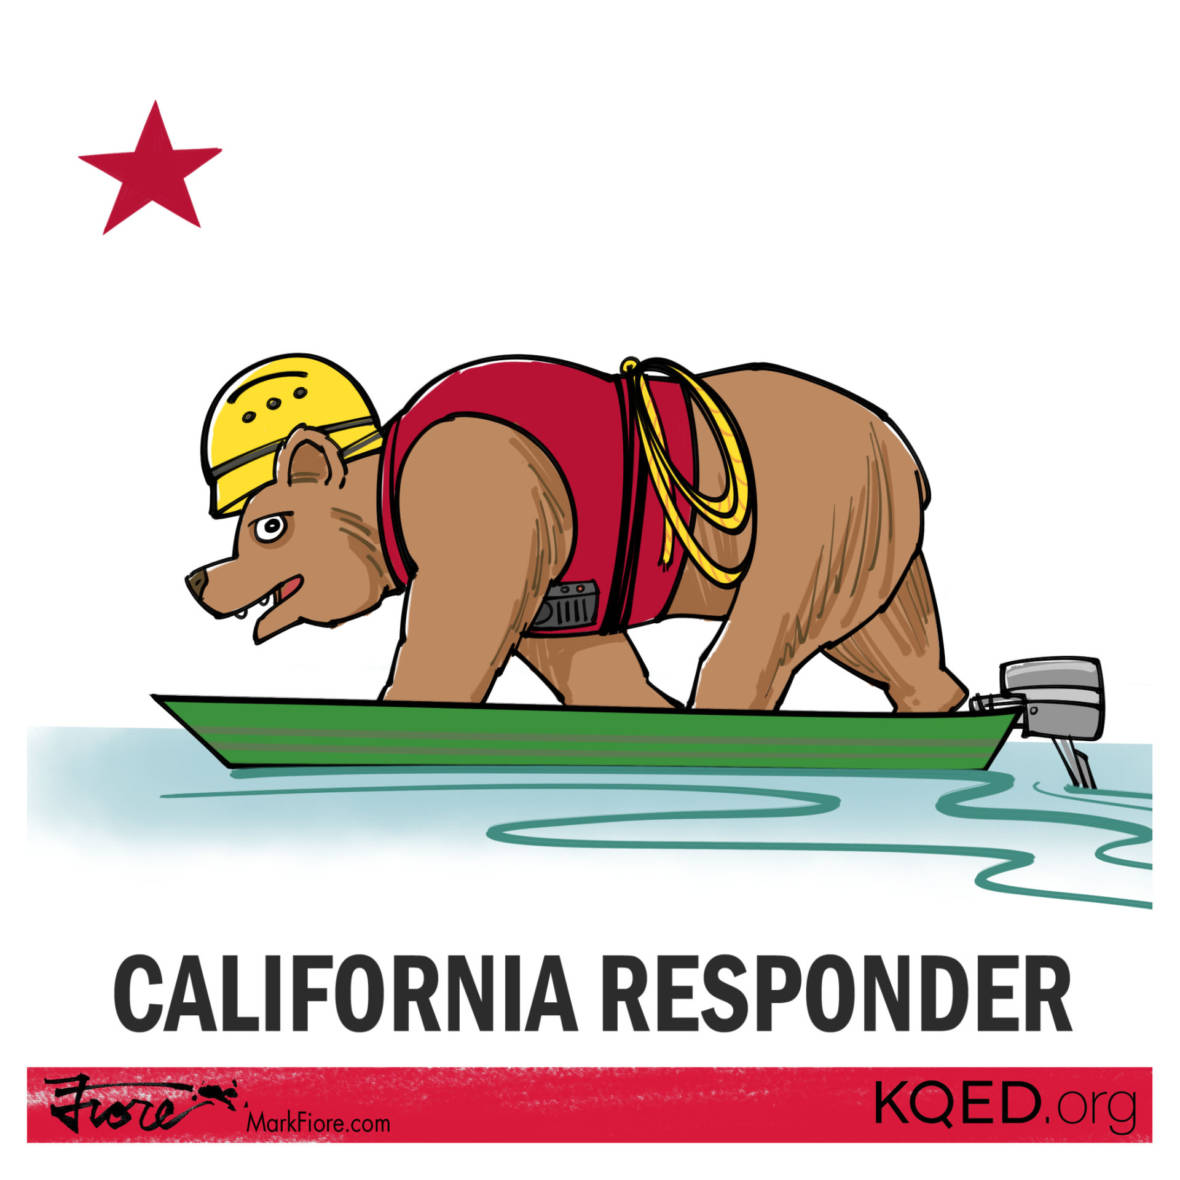 First Responders, Second Hurricane